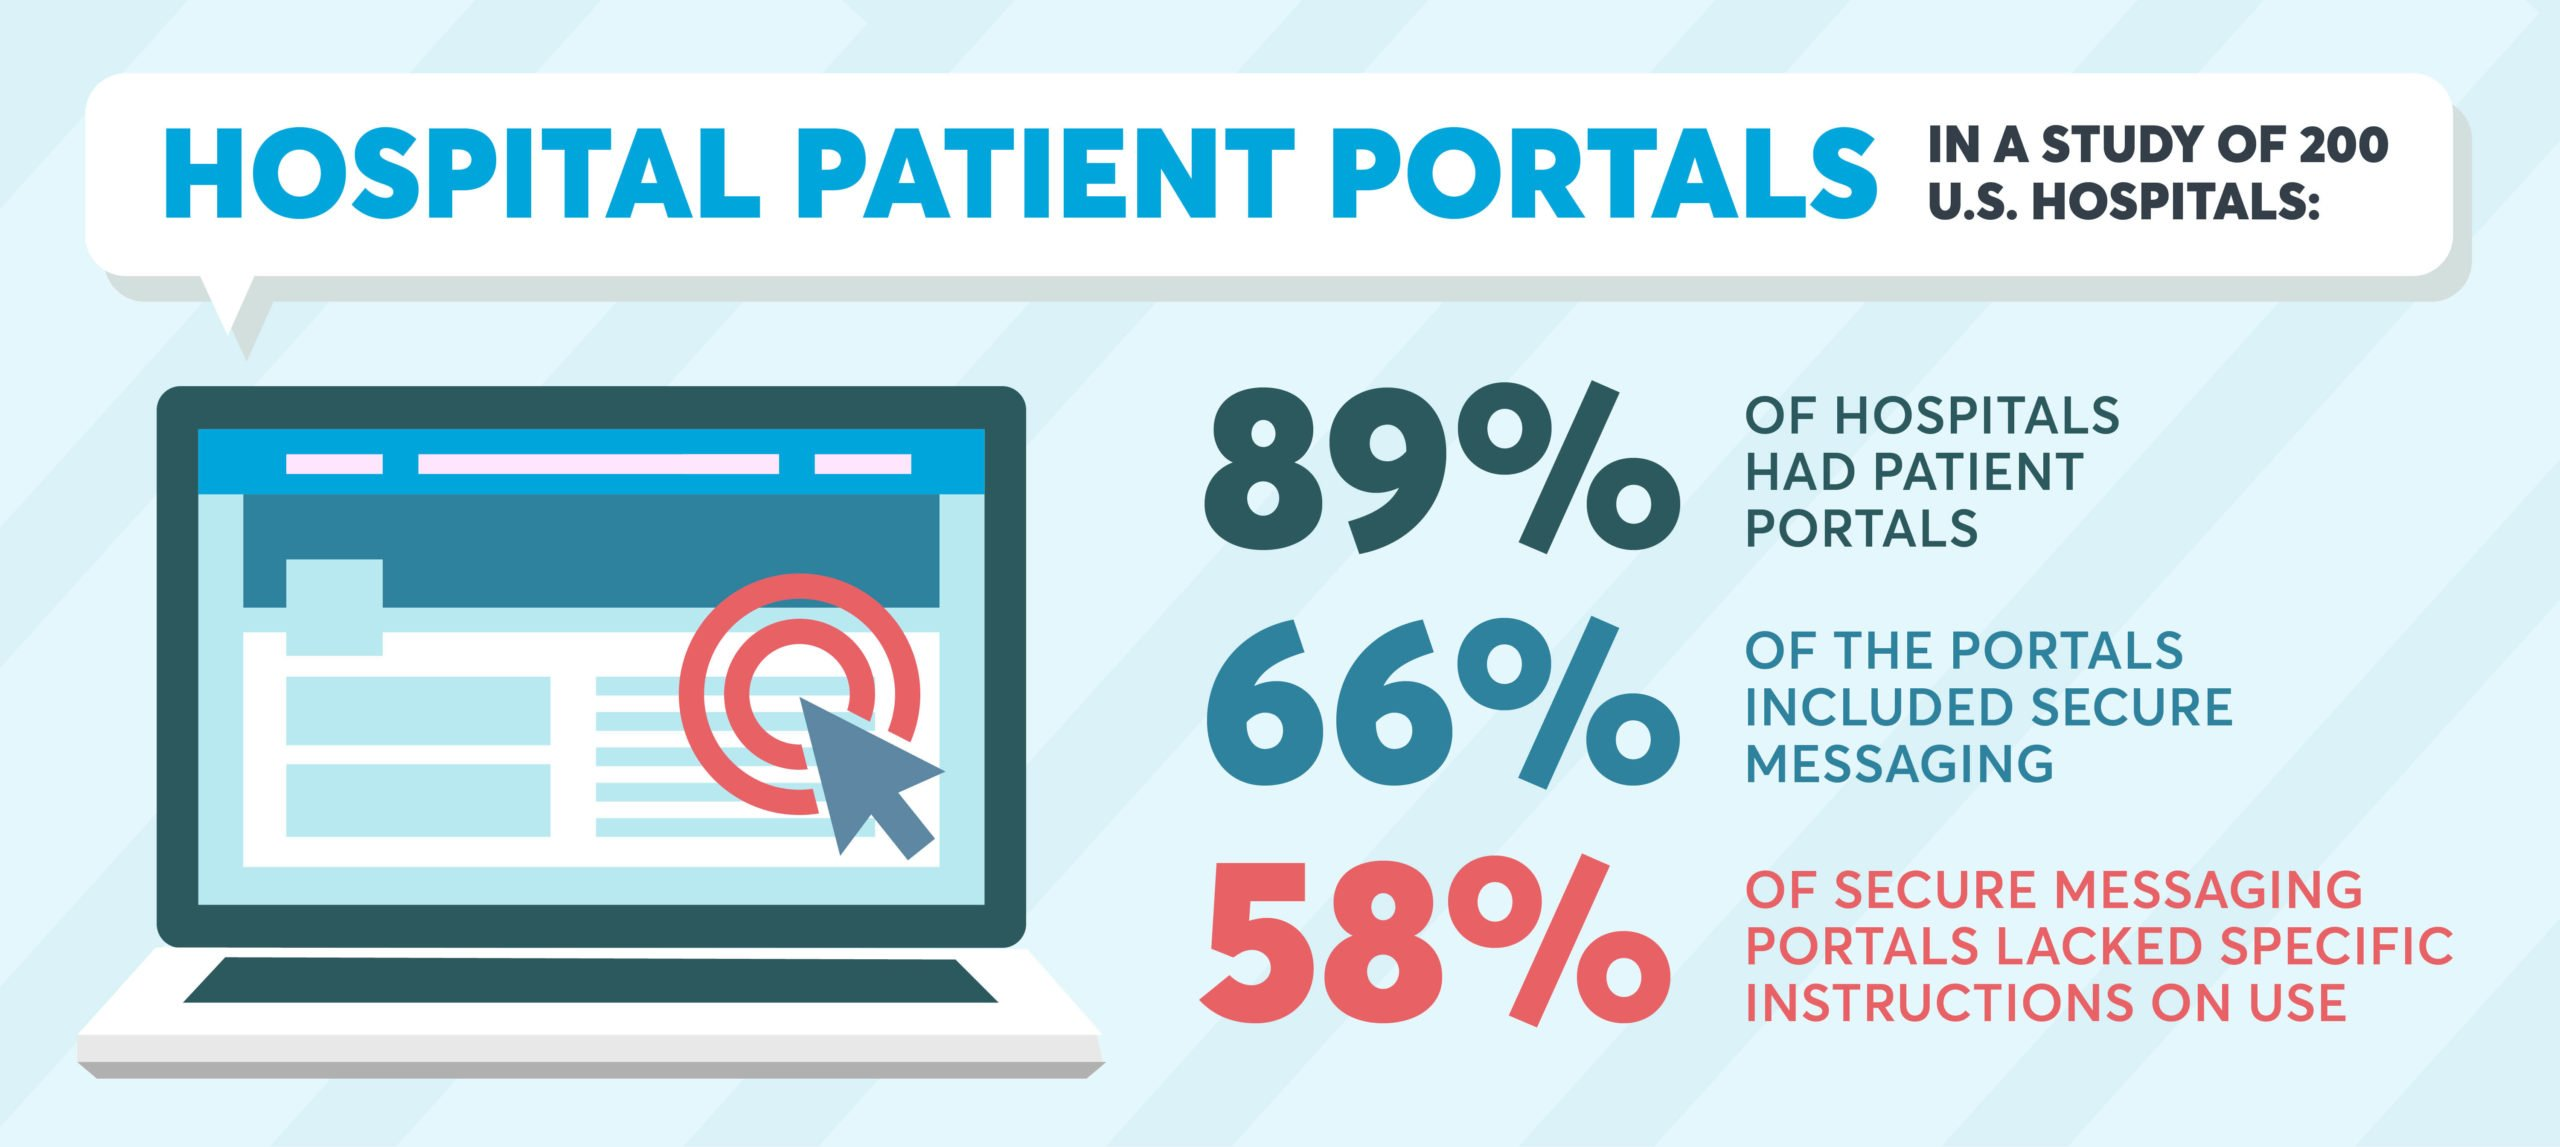 Hospital patient portals lack specific and informative instructions for patients